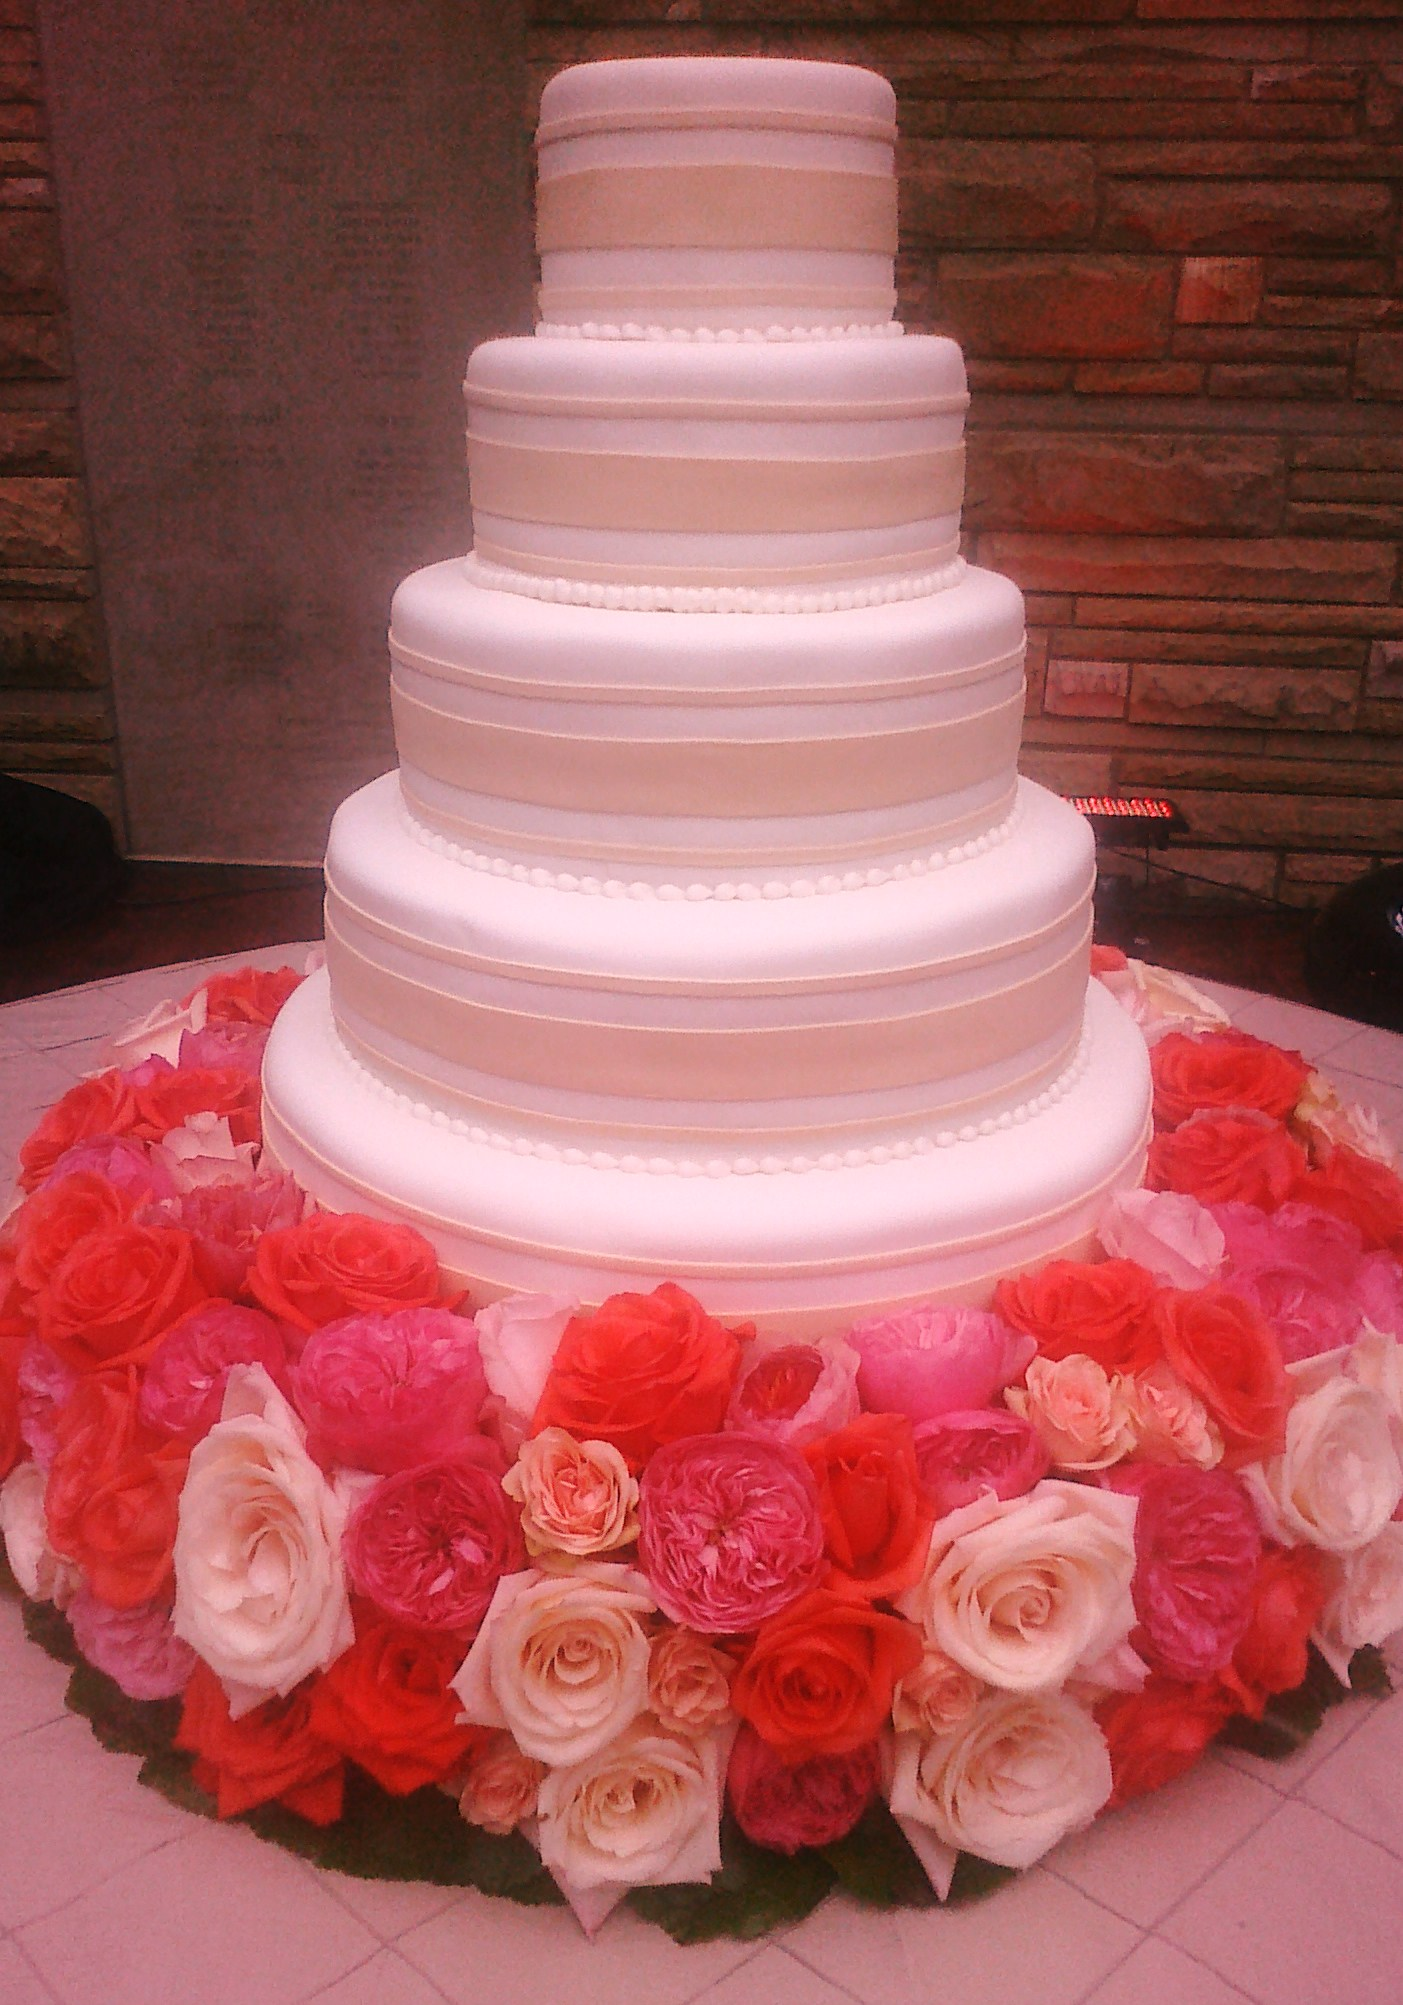 wedding cake presentation image of a beautiful cake impremedia net 23545